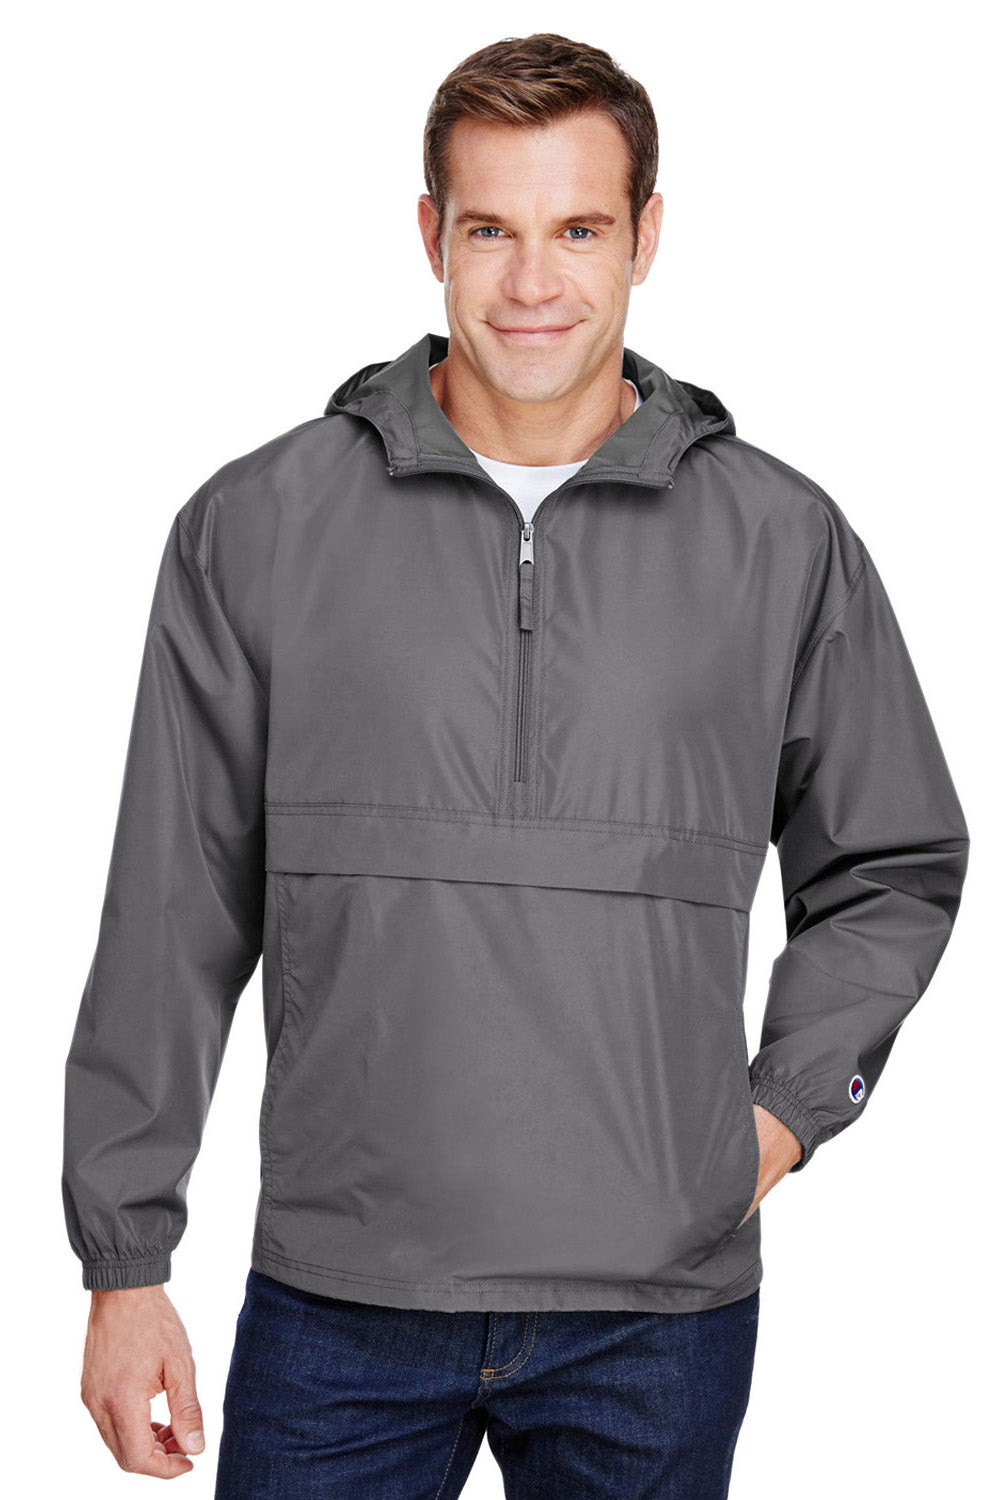 Champion CO200 Mens Packable Anorak 1/4 Zip Hooded Jacket Graphite Grey Front